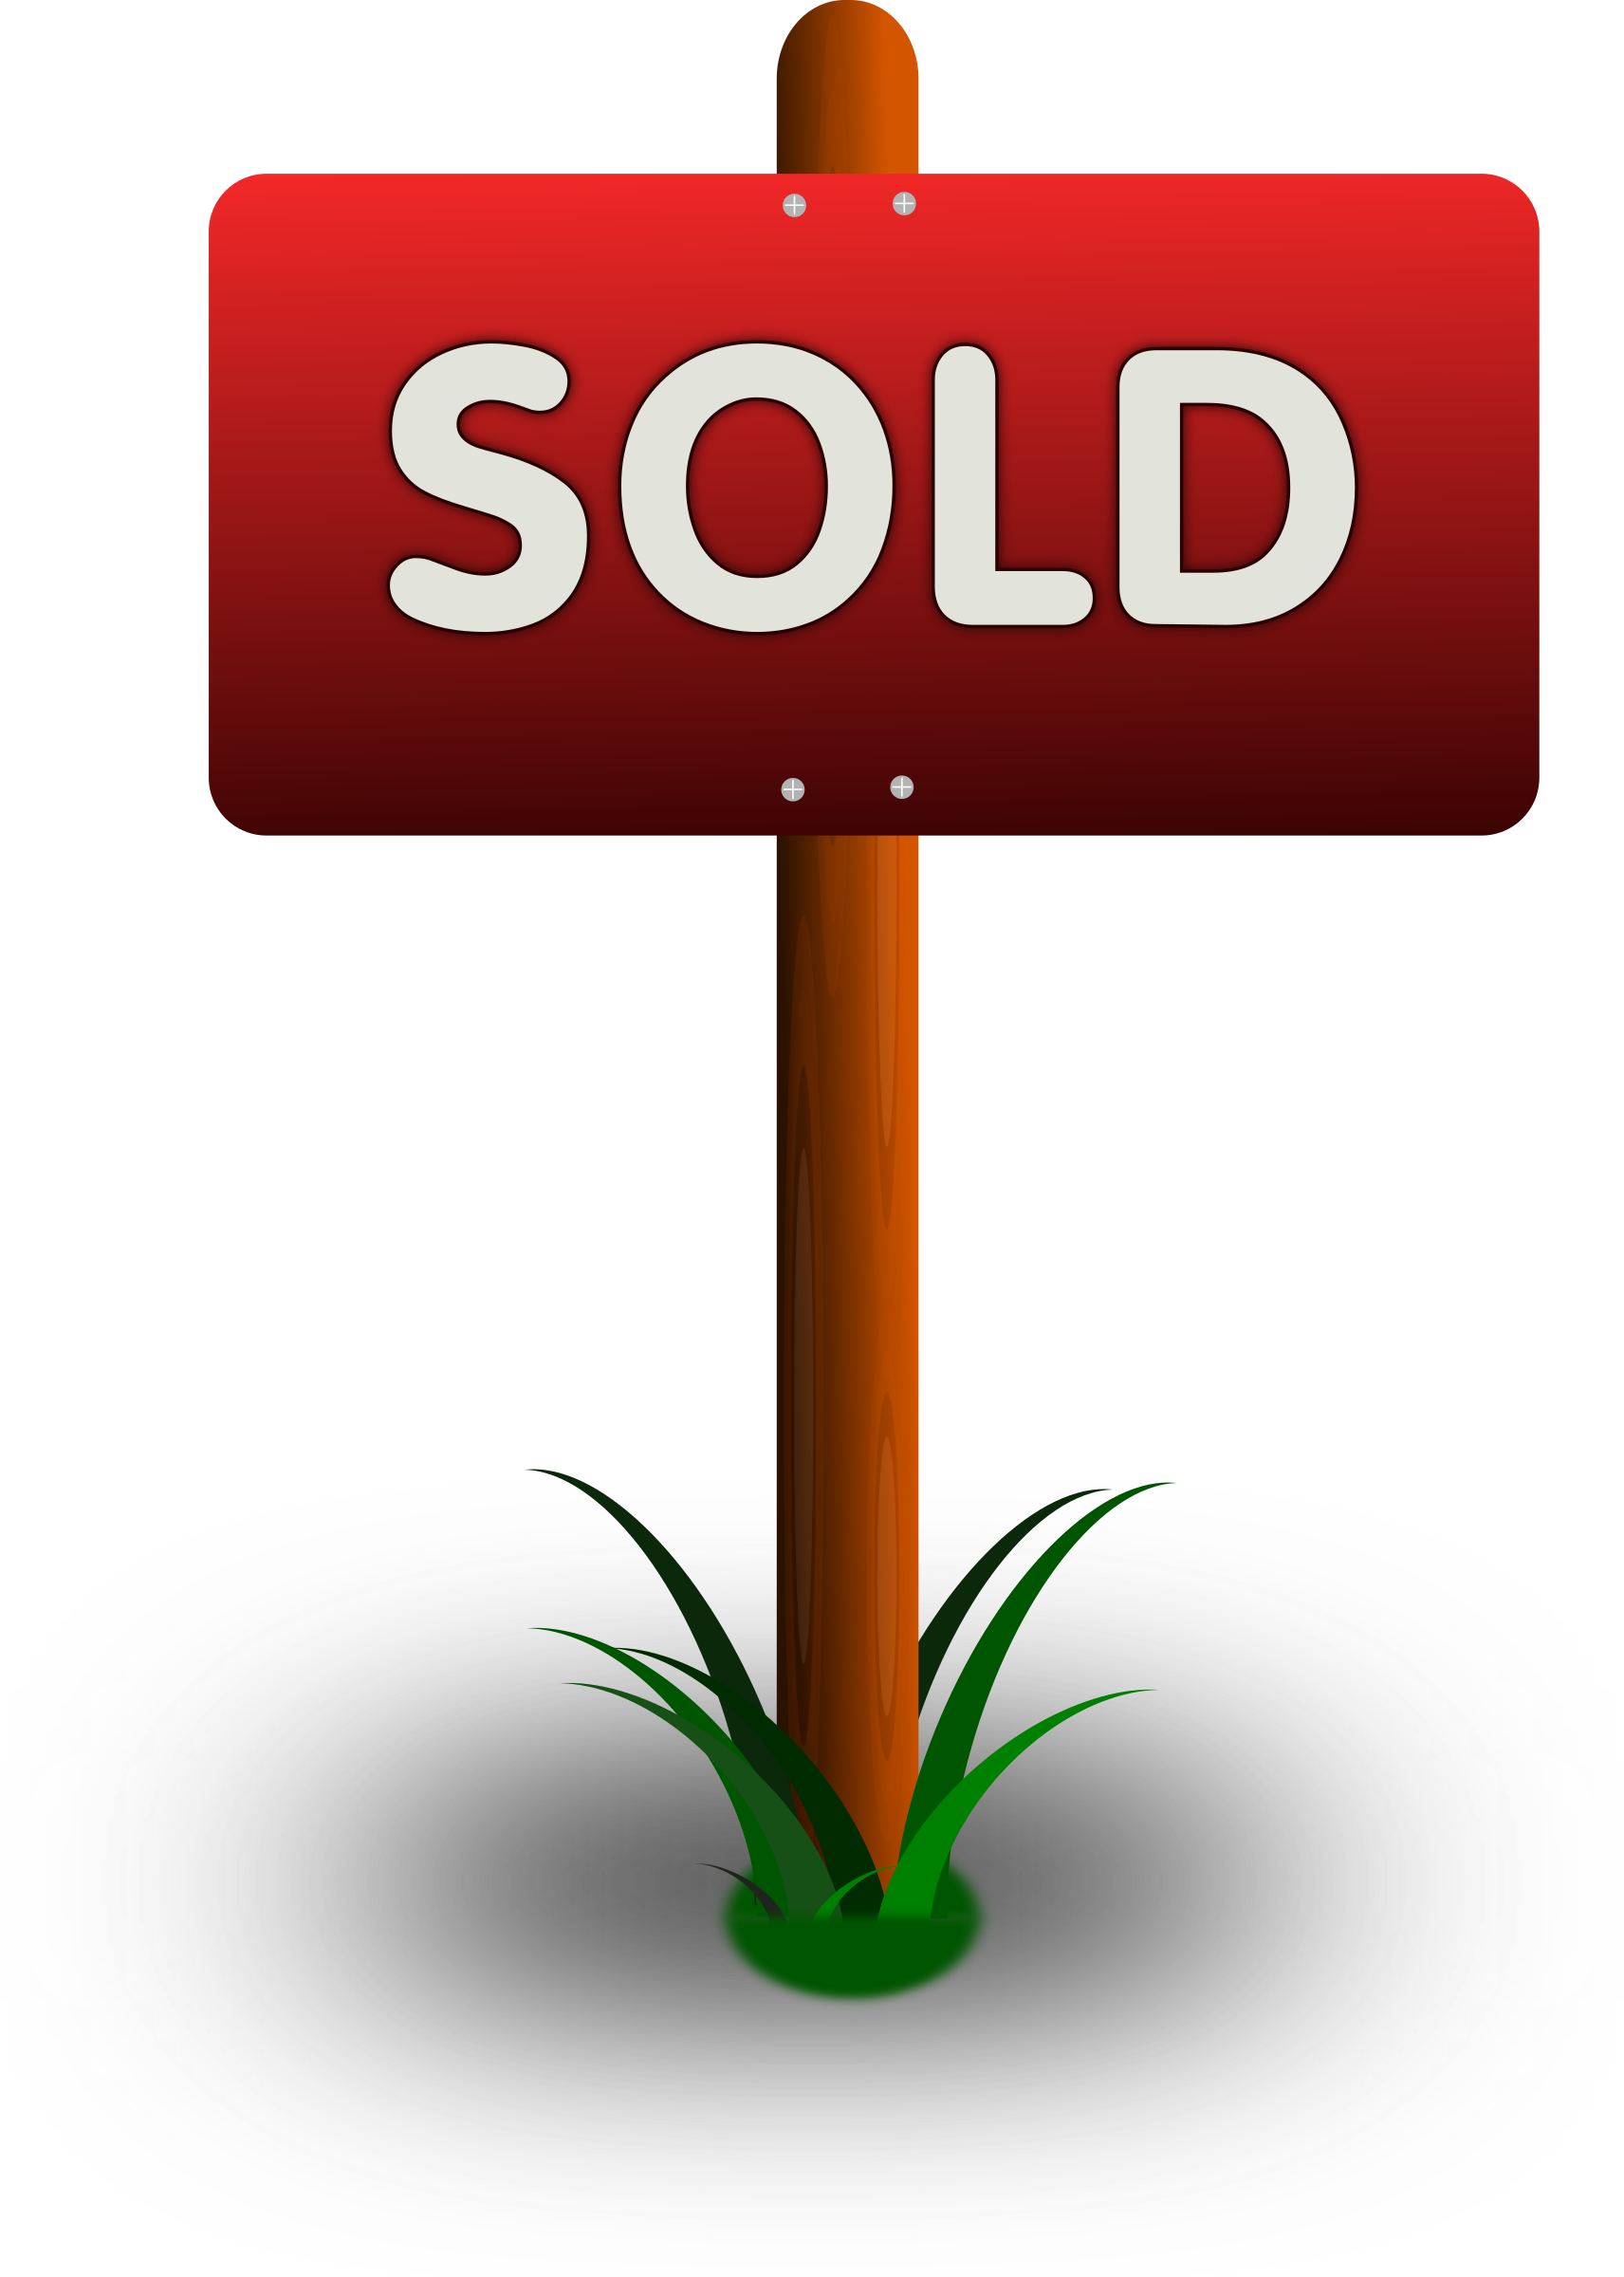 Image result for sold sign images